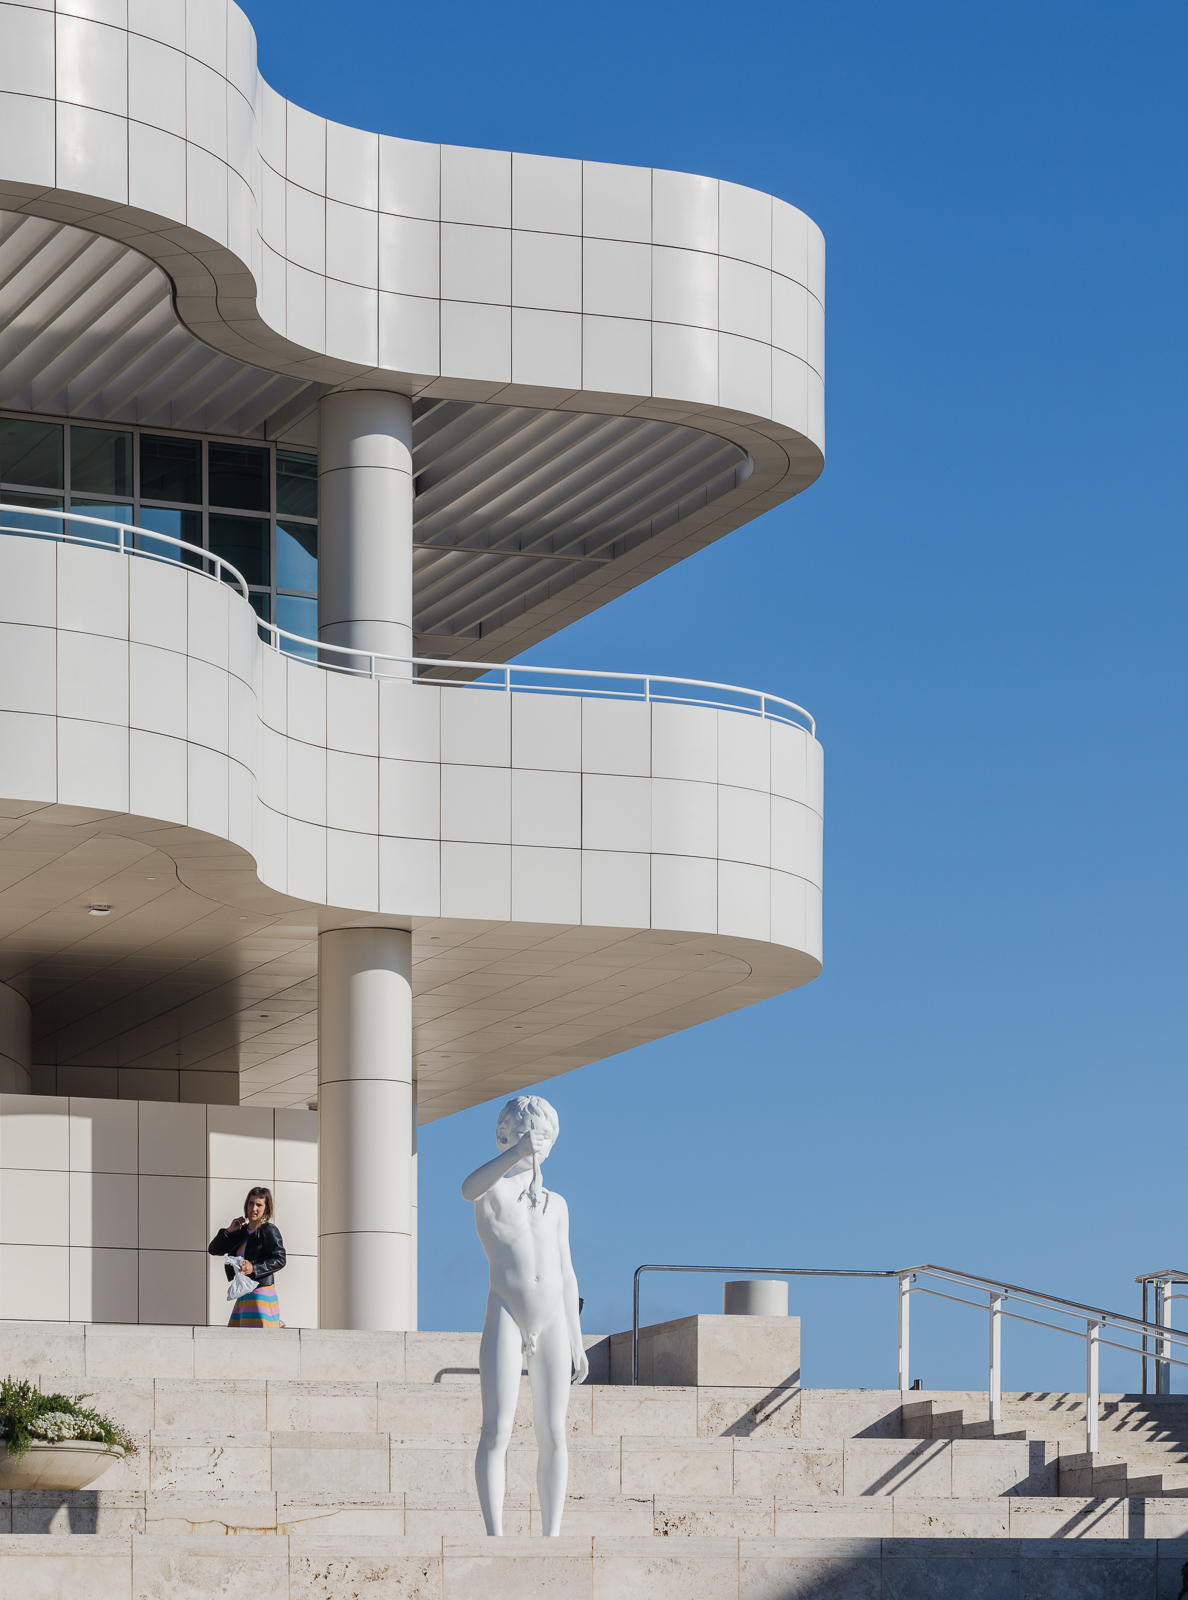 Details of the entrance hall at the Getty Center